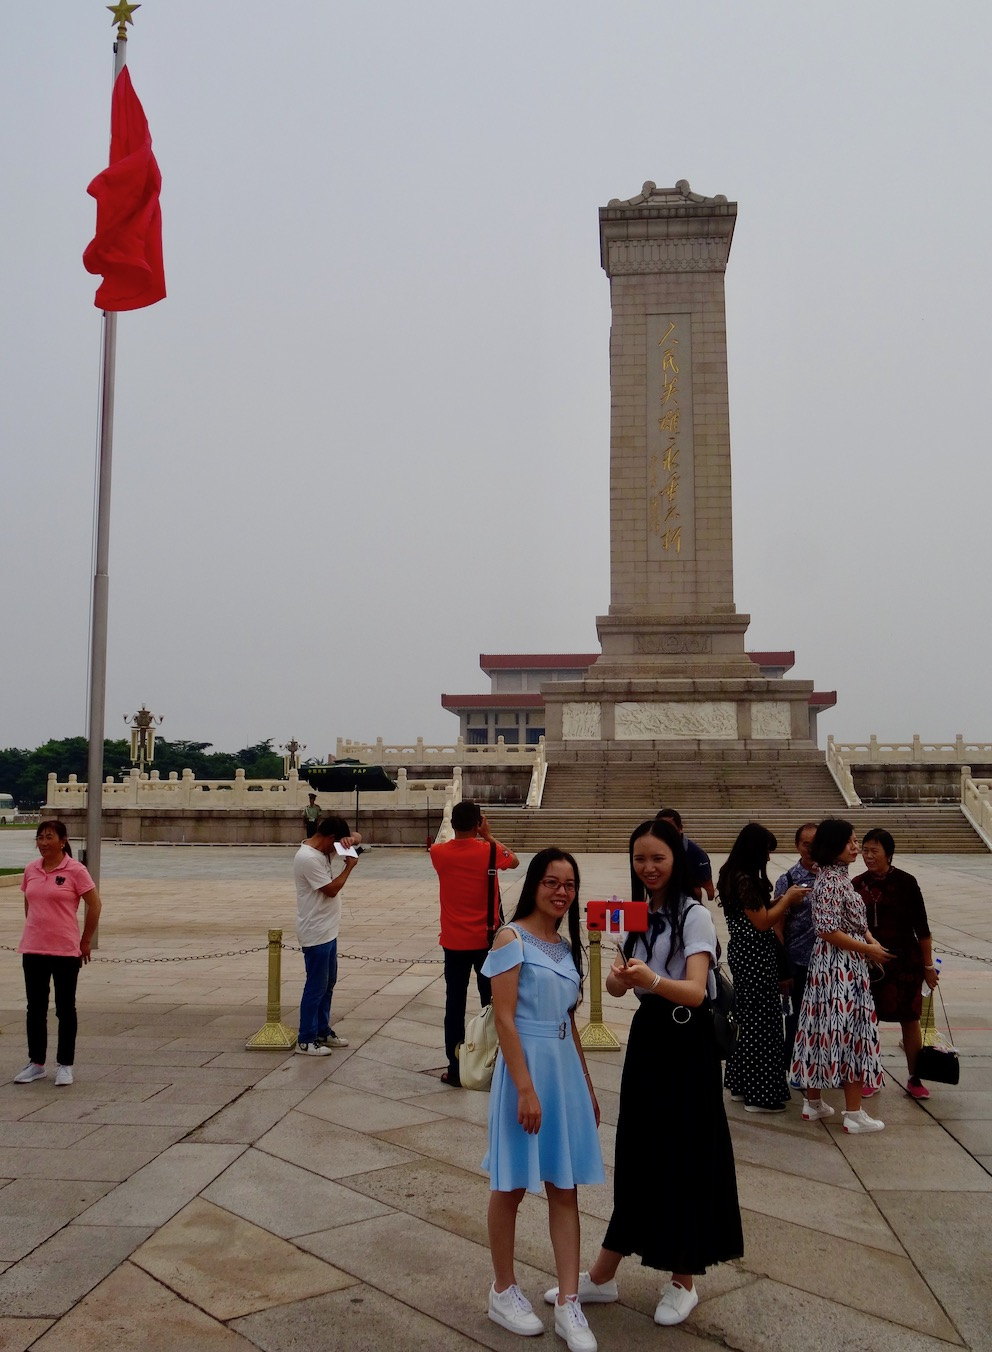 Monument to the People's Heroes Tiananmen Square Beijing.